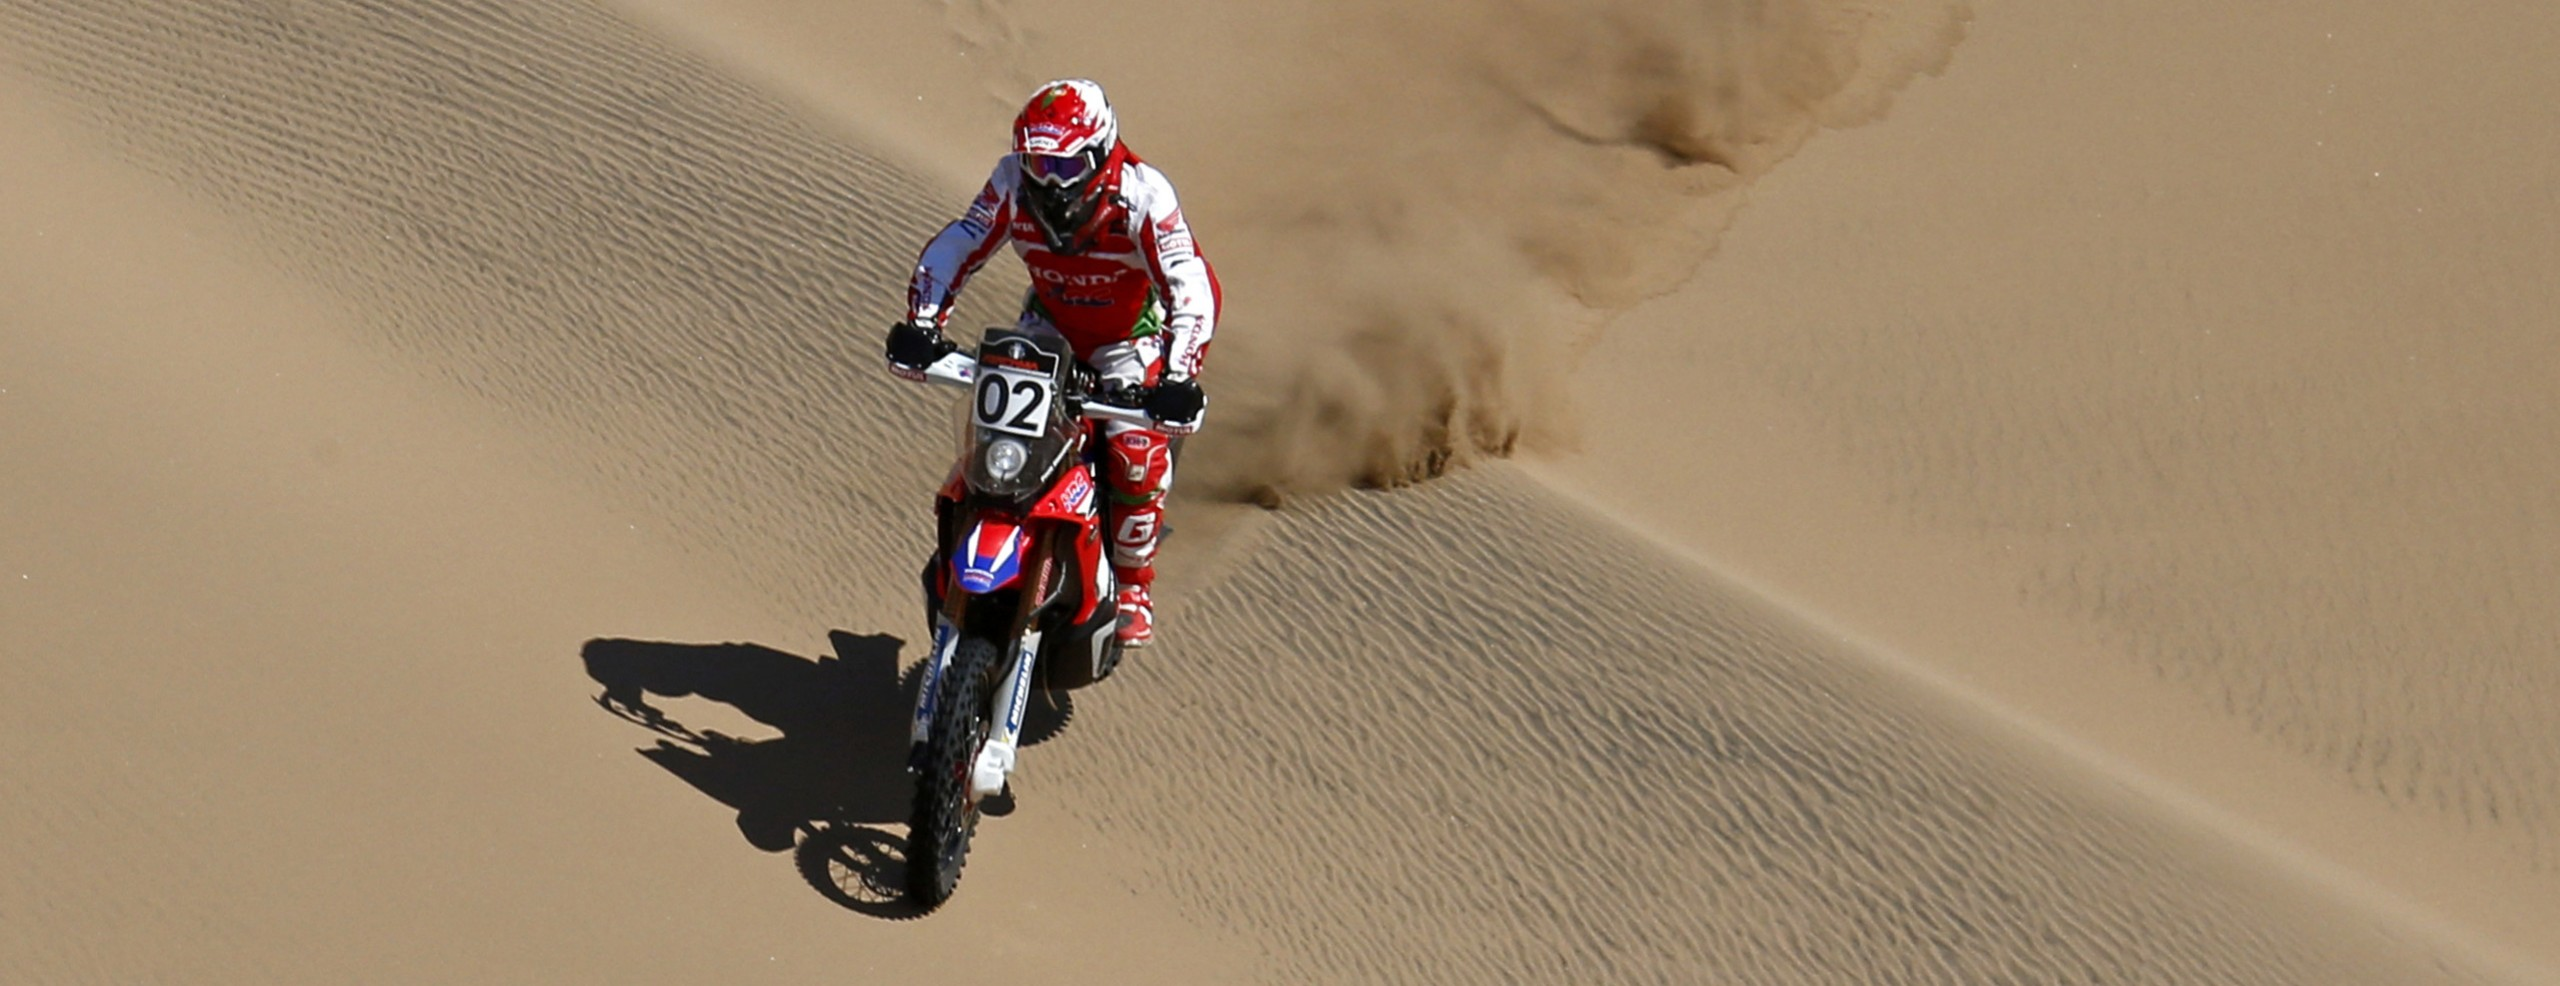 Team HRC performs well in a gruelling desert stage